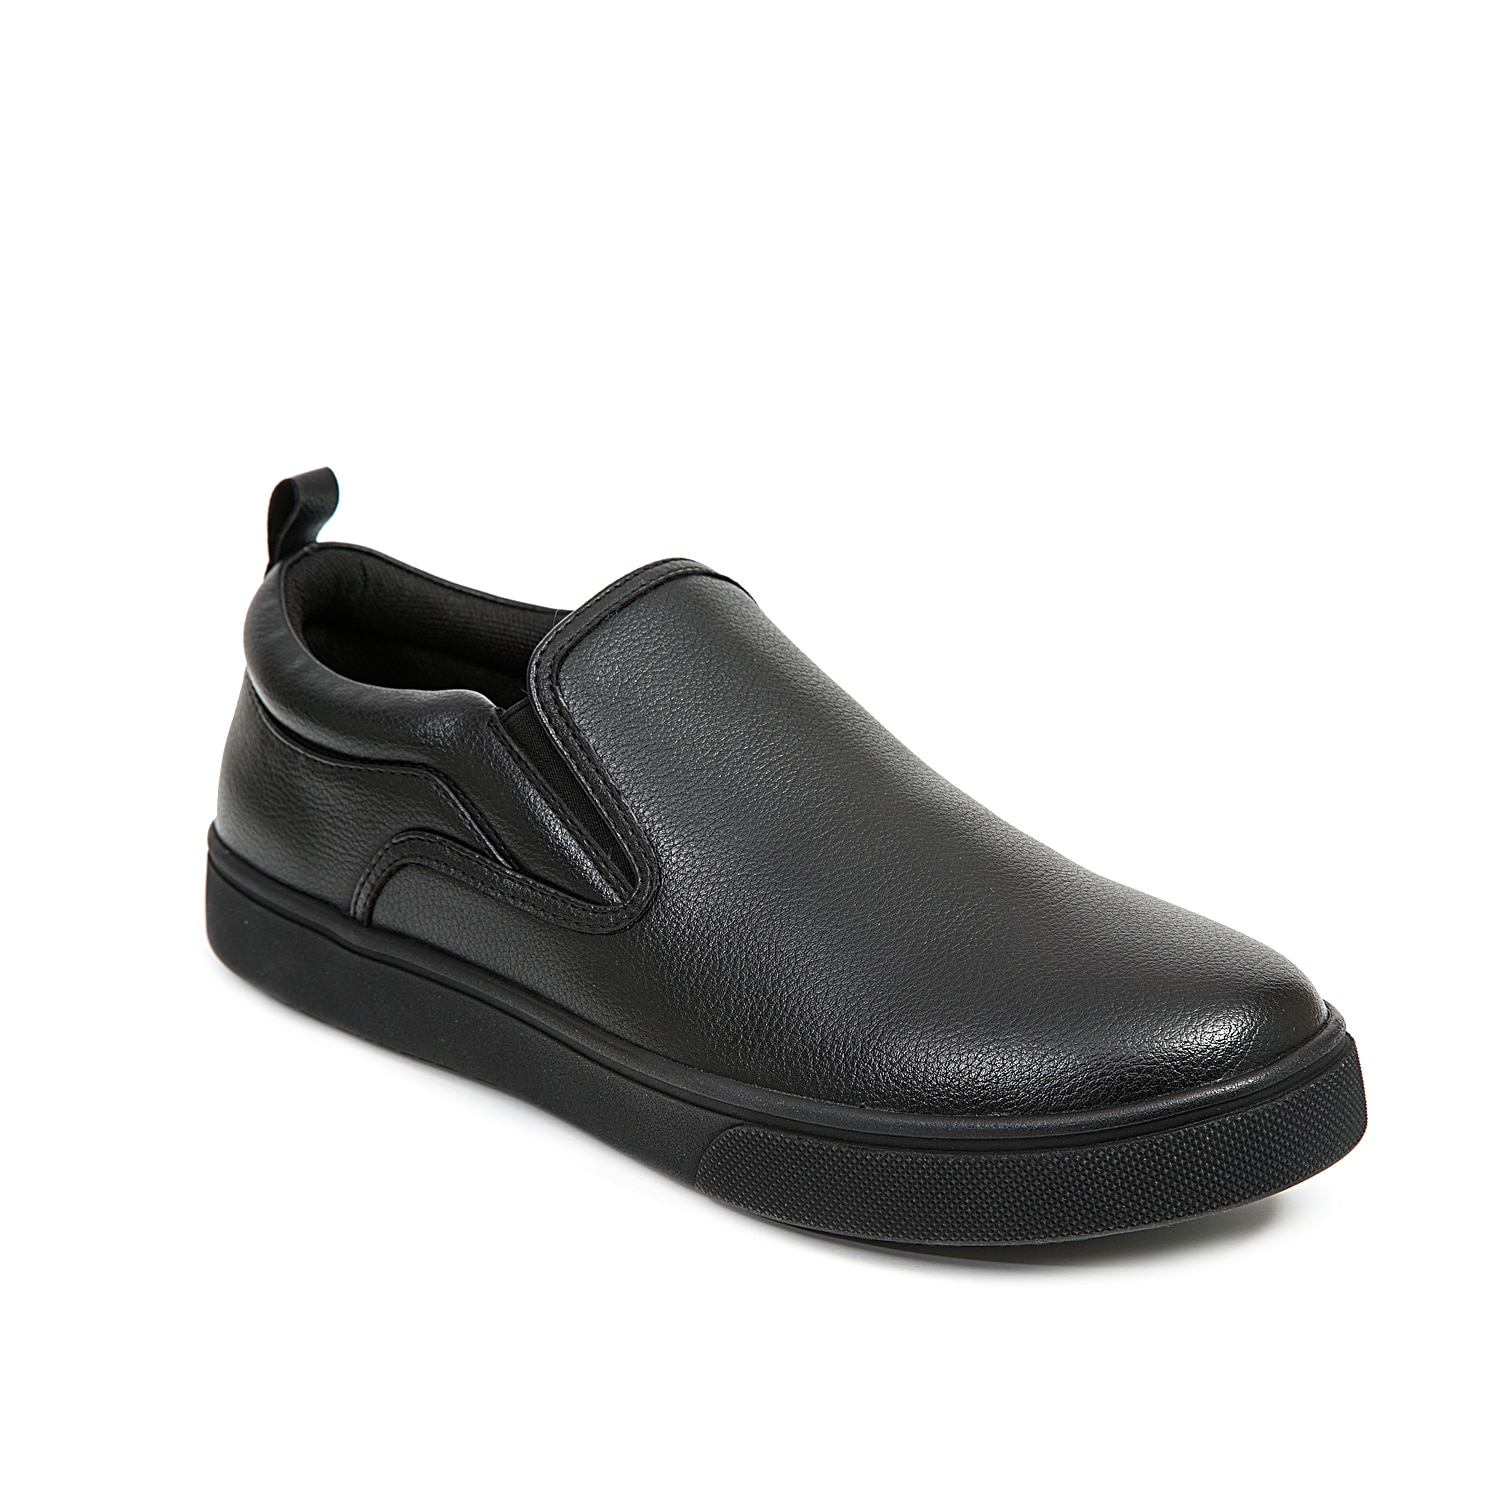 You\\\'ll feel great on your feet all day long when wearing the Depot work slip-on from Deer stags. With the Memory Foam footbed and slip and oil-resistant rubber sole to keep you safe and secure while on the job!